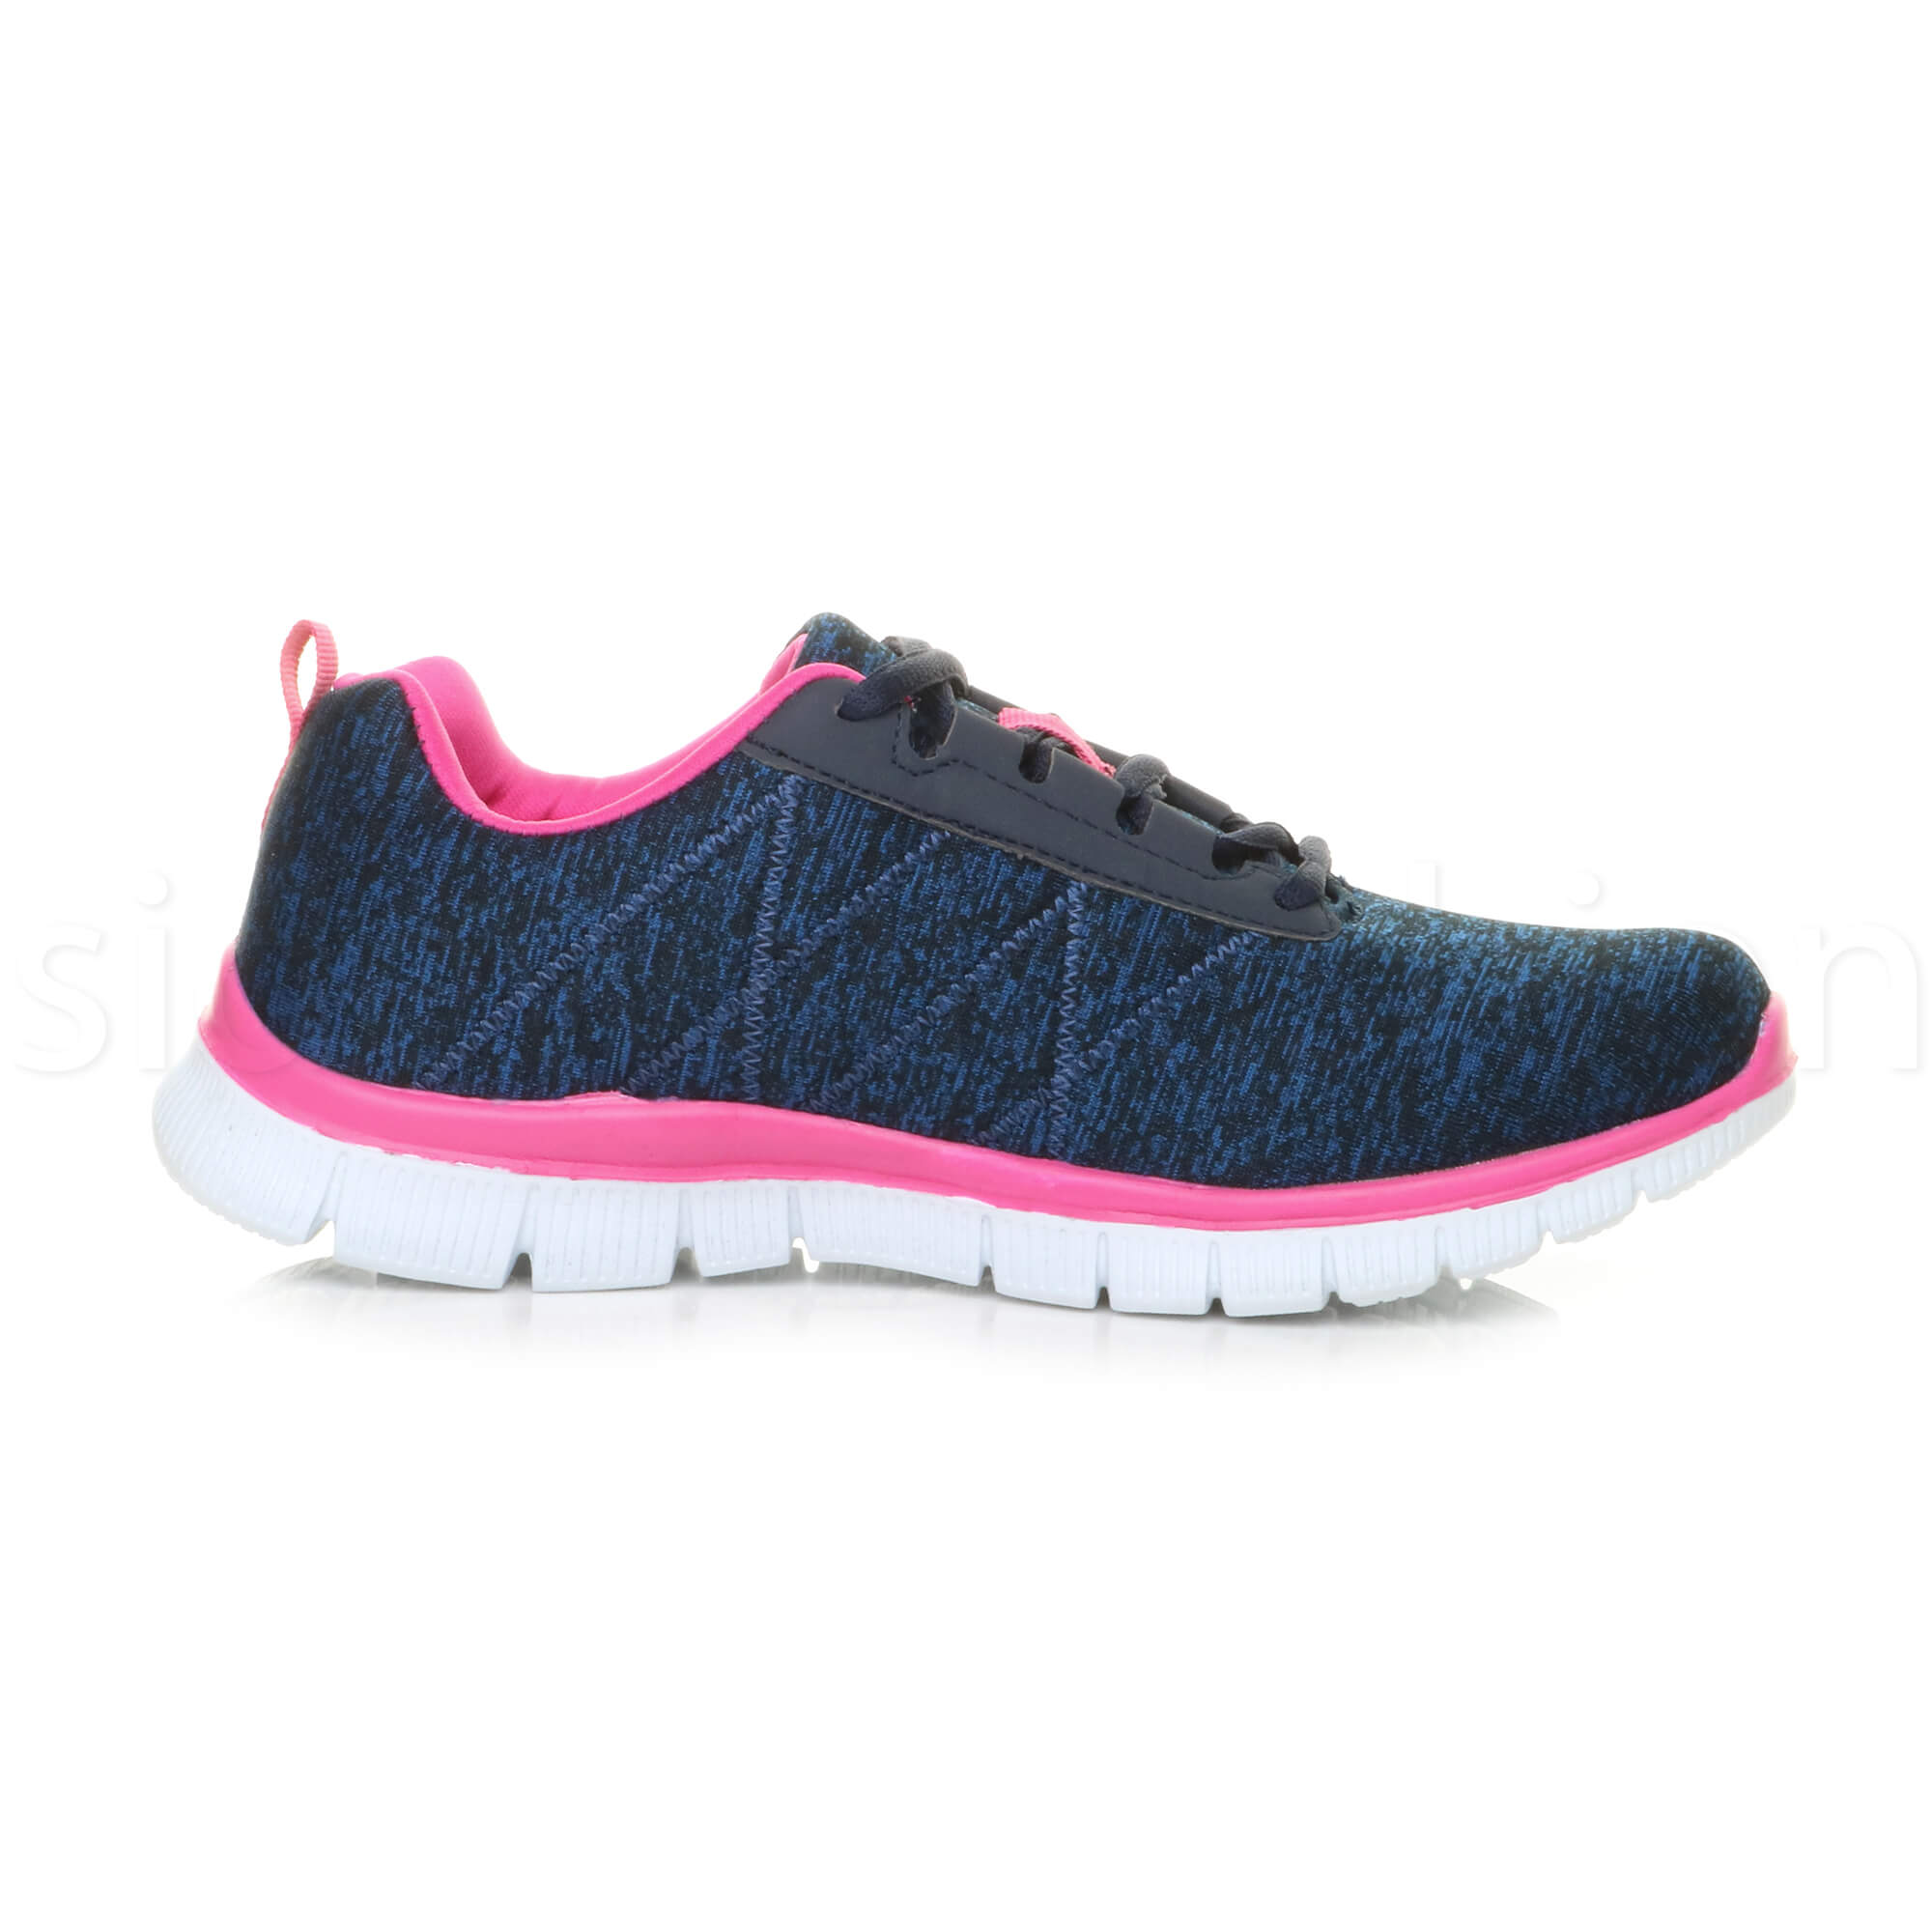 Womens-ladies-comfort-memory-foam-lace-up-trainers-activewear-sneakers-gym-shoes thumbnail 66